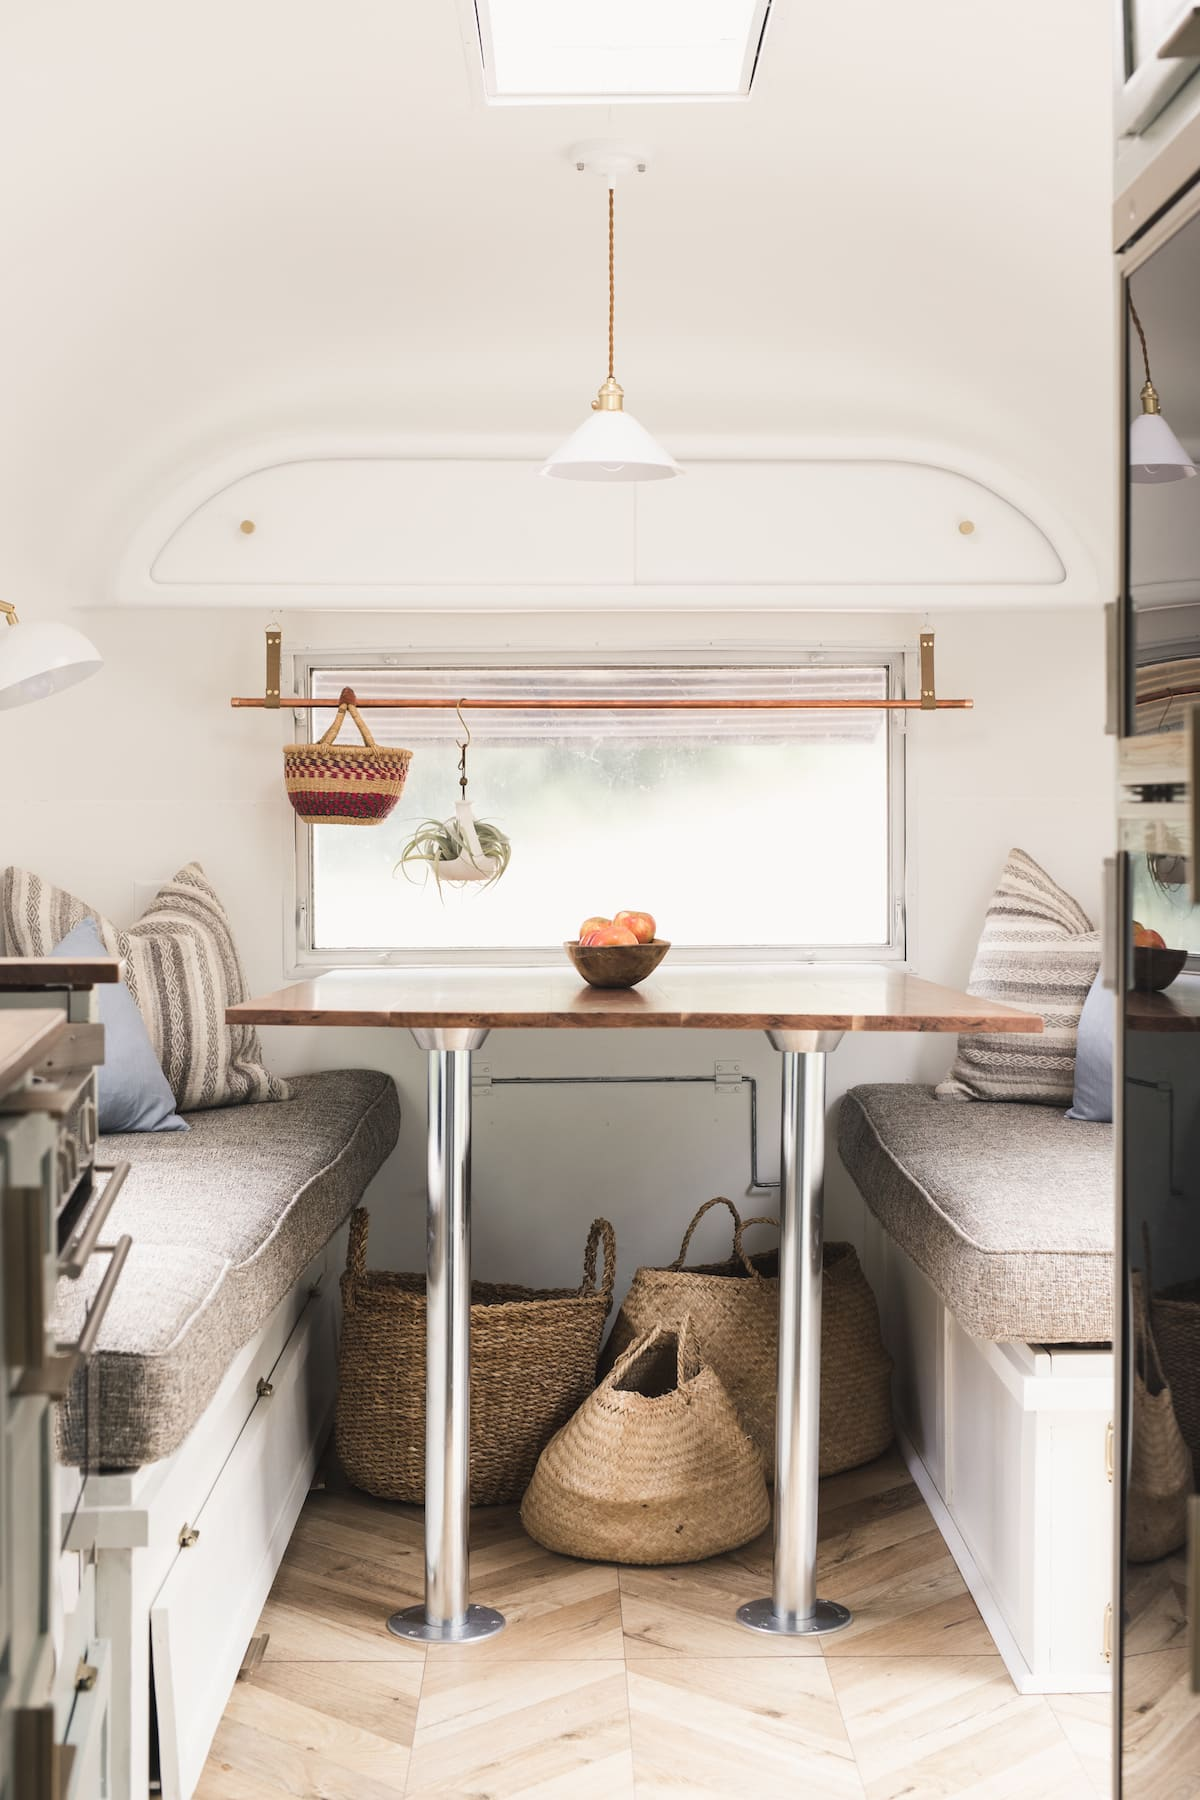 marjorie airstream 2 - This renovated Airstream trailer is all floral and boho-chic charm